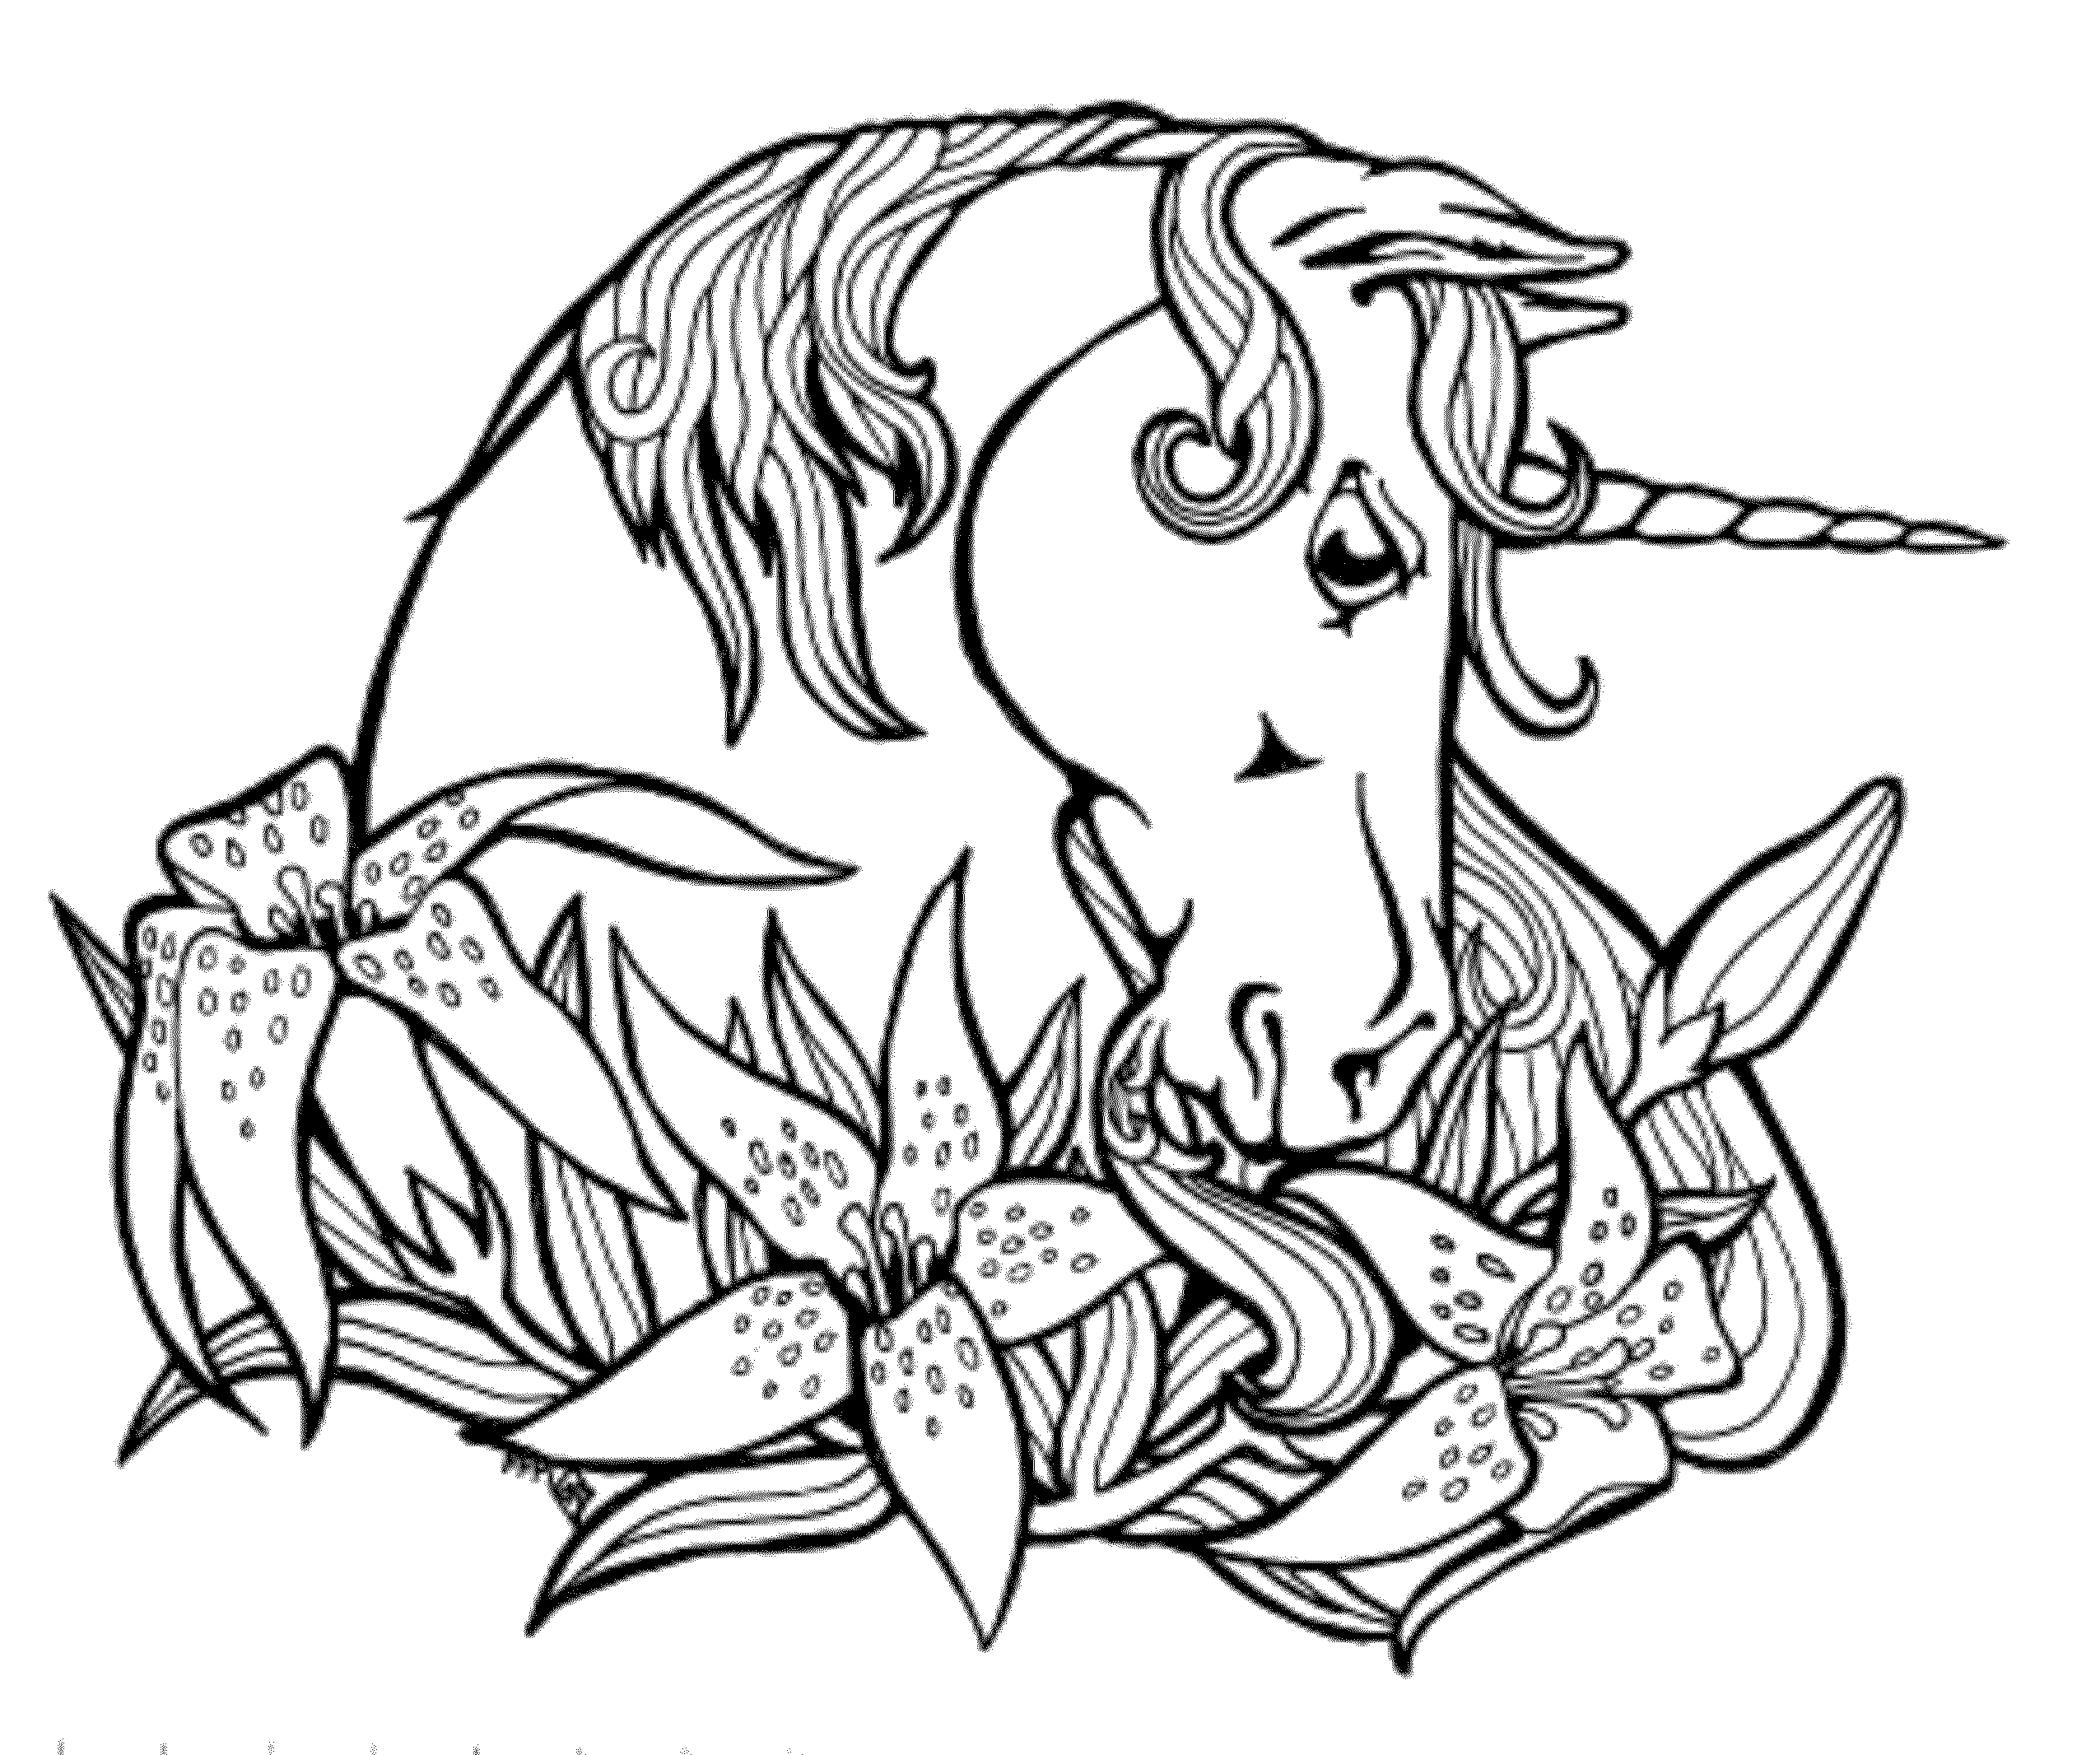 unicorn print out unicorn coloring pages free learning printable print unicorn out